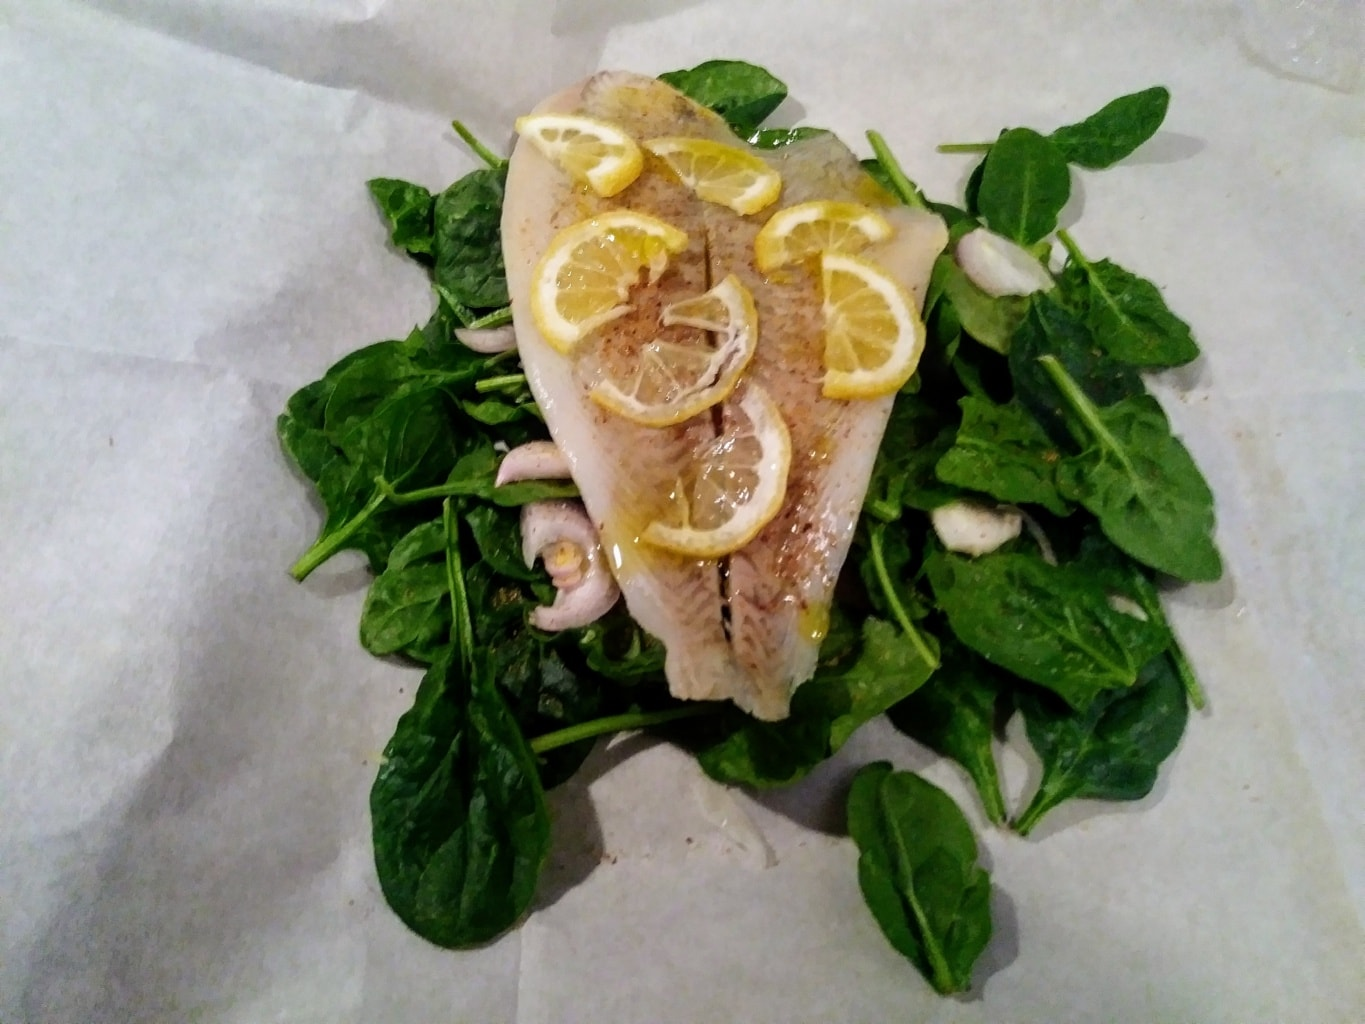 Spinach, shallot, sole, and lemon slices